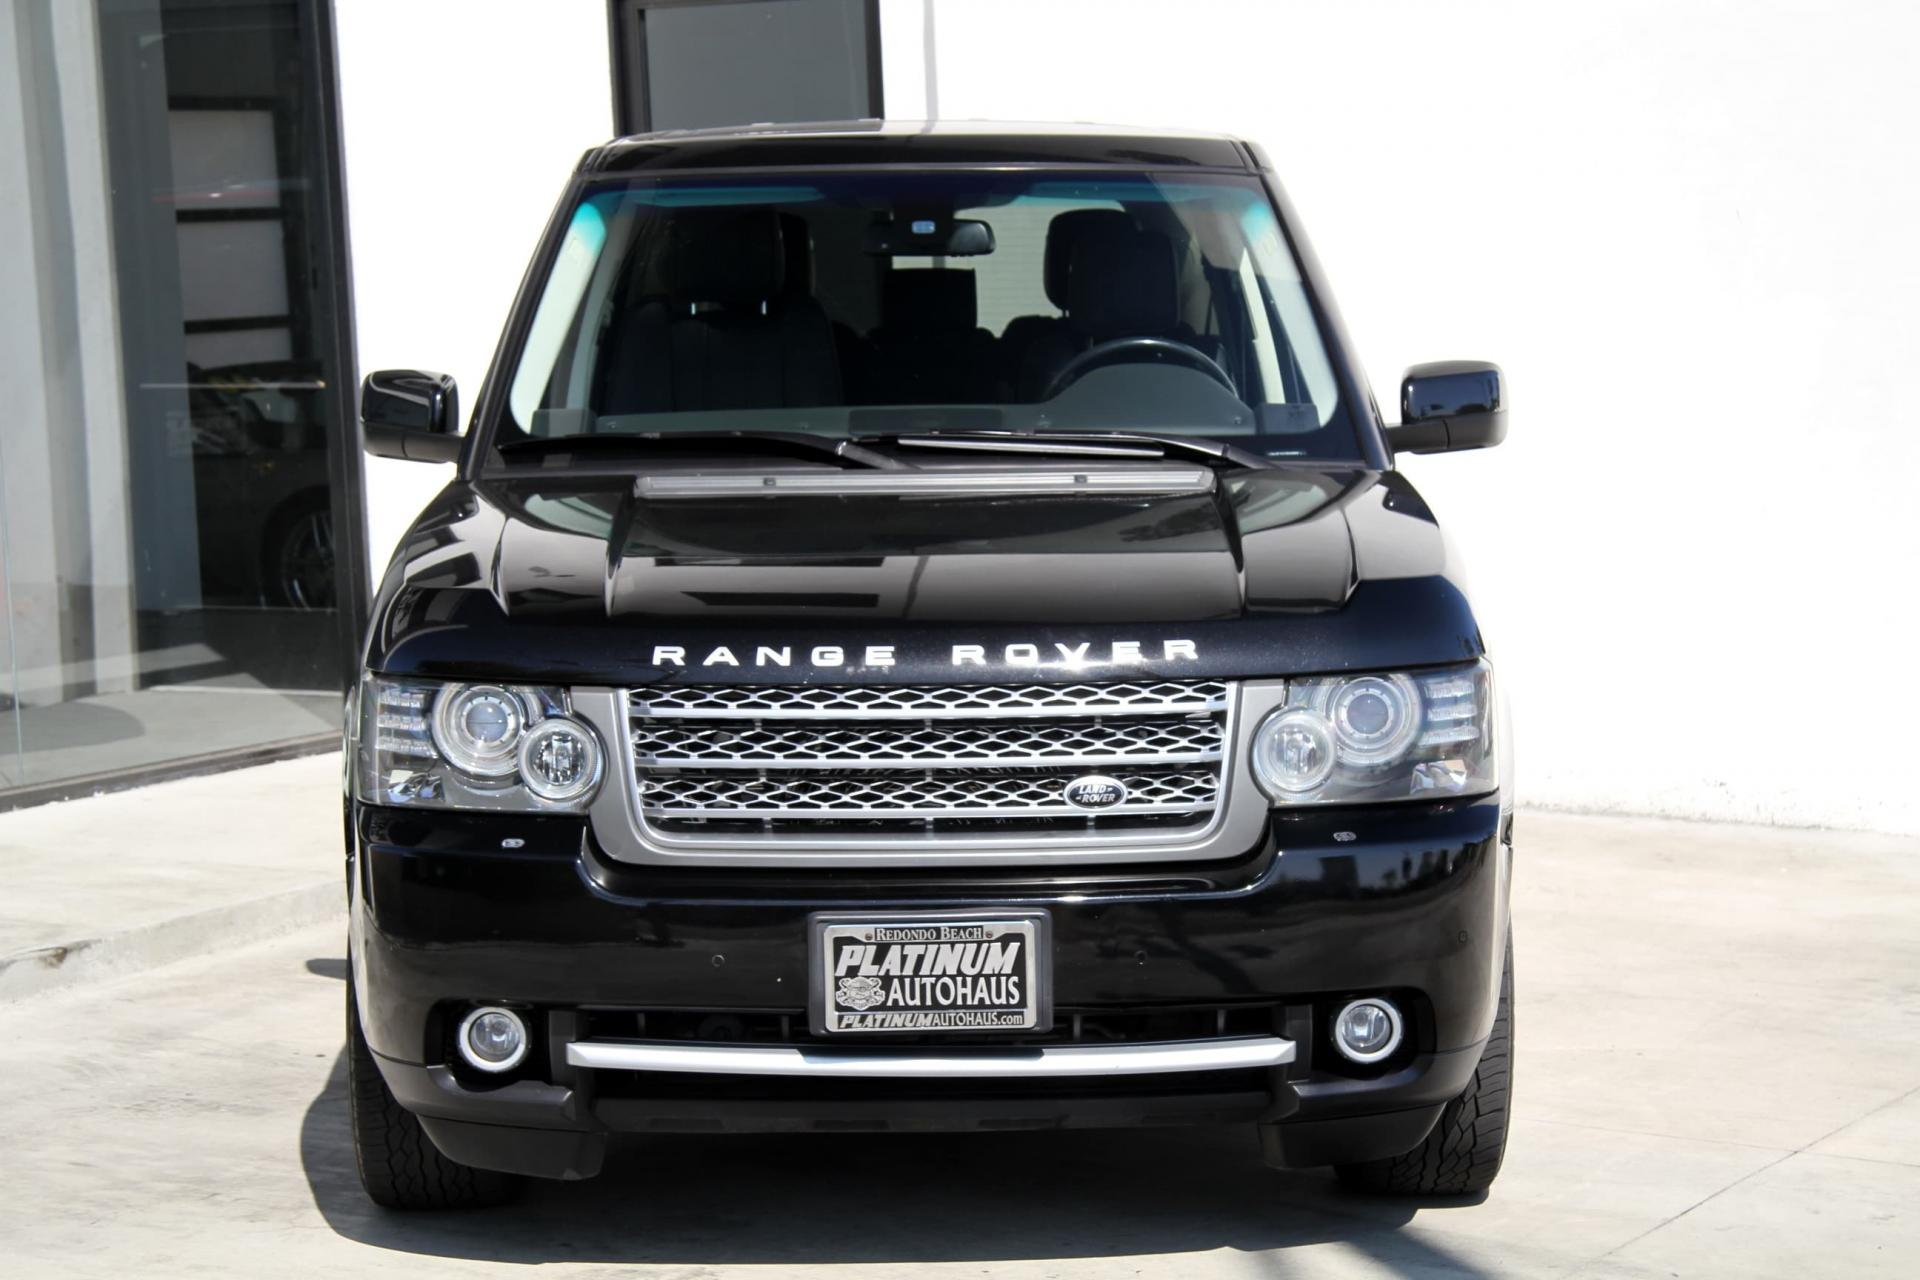 Range Rover Used For Sale >> 2011 Land Rover Range Rover Supercharged Stock # 5969 for ...